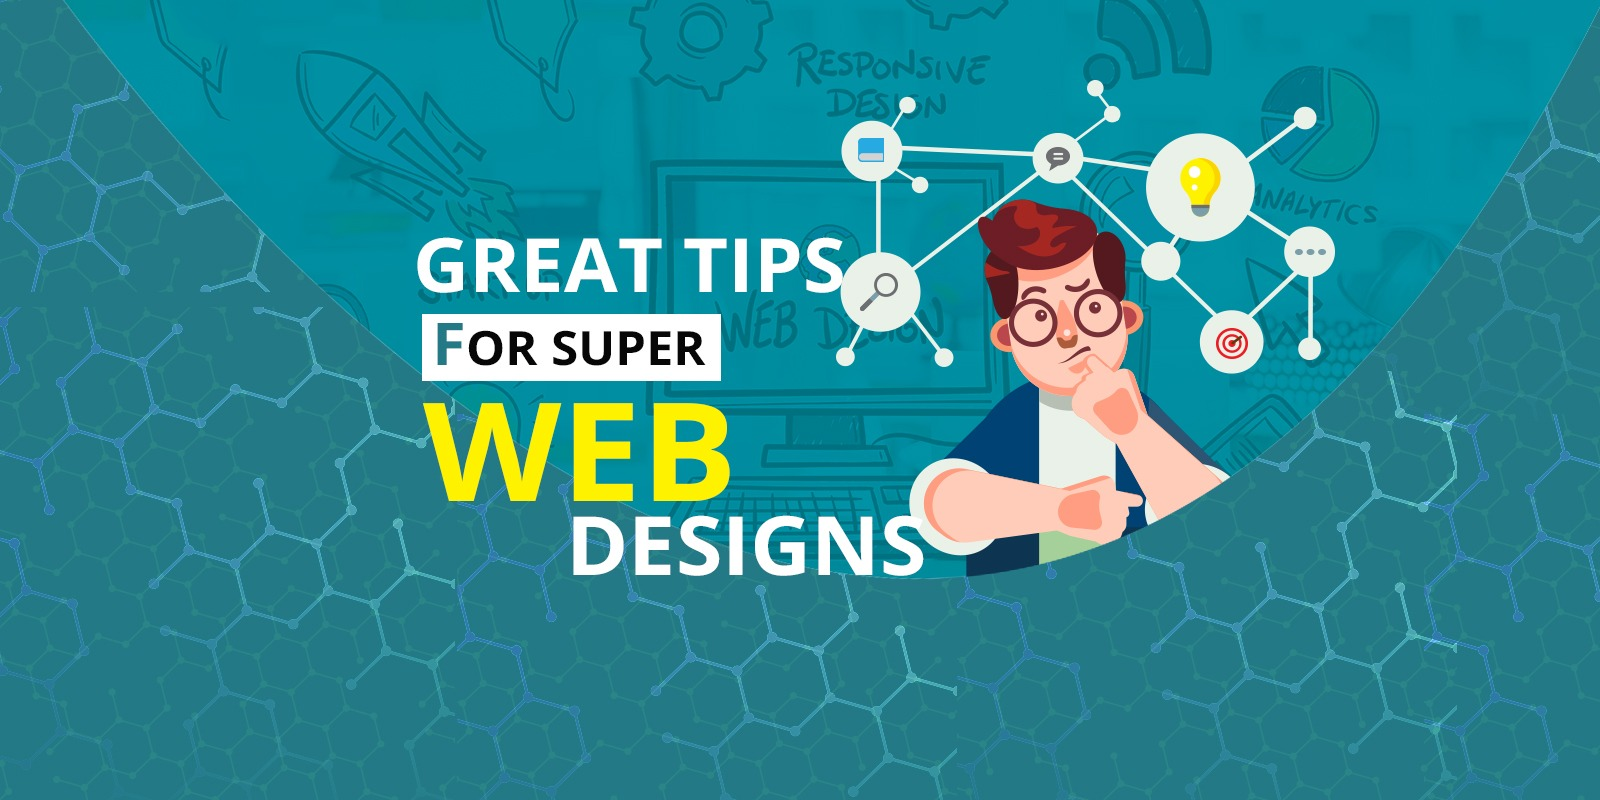 5 Great Tips for Super Web Design in 2018